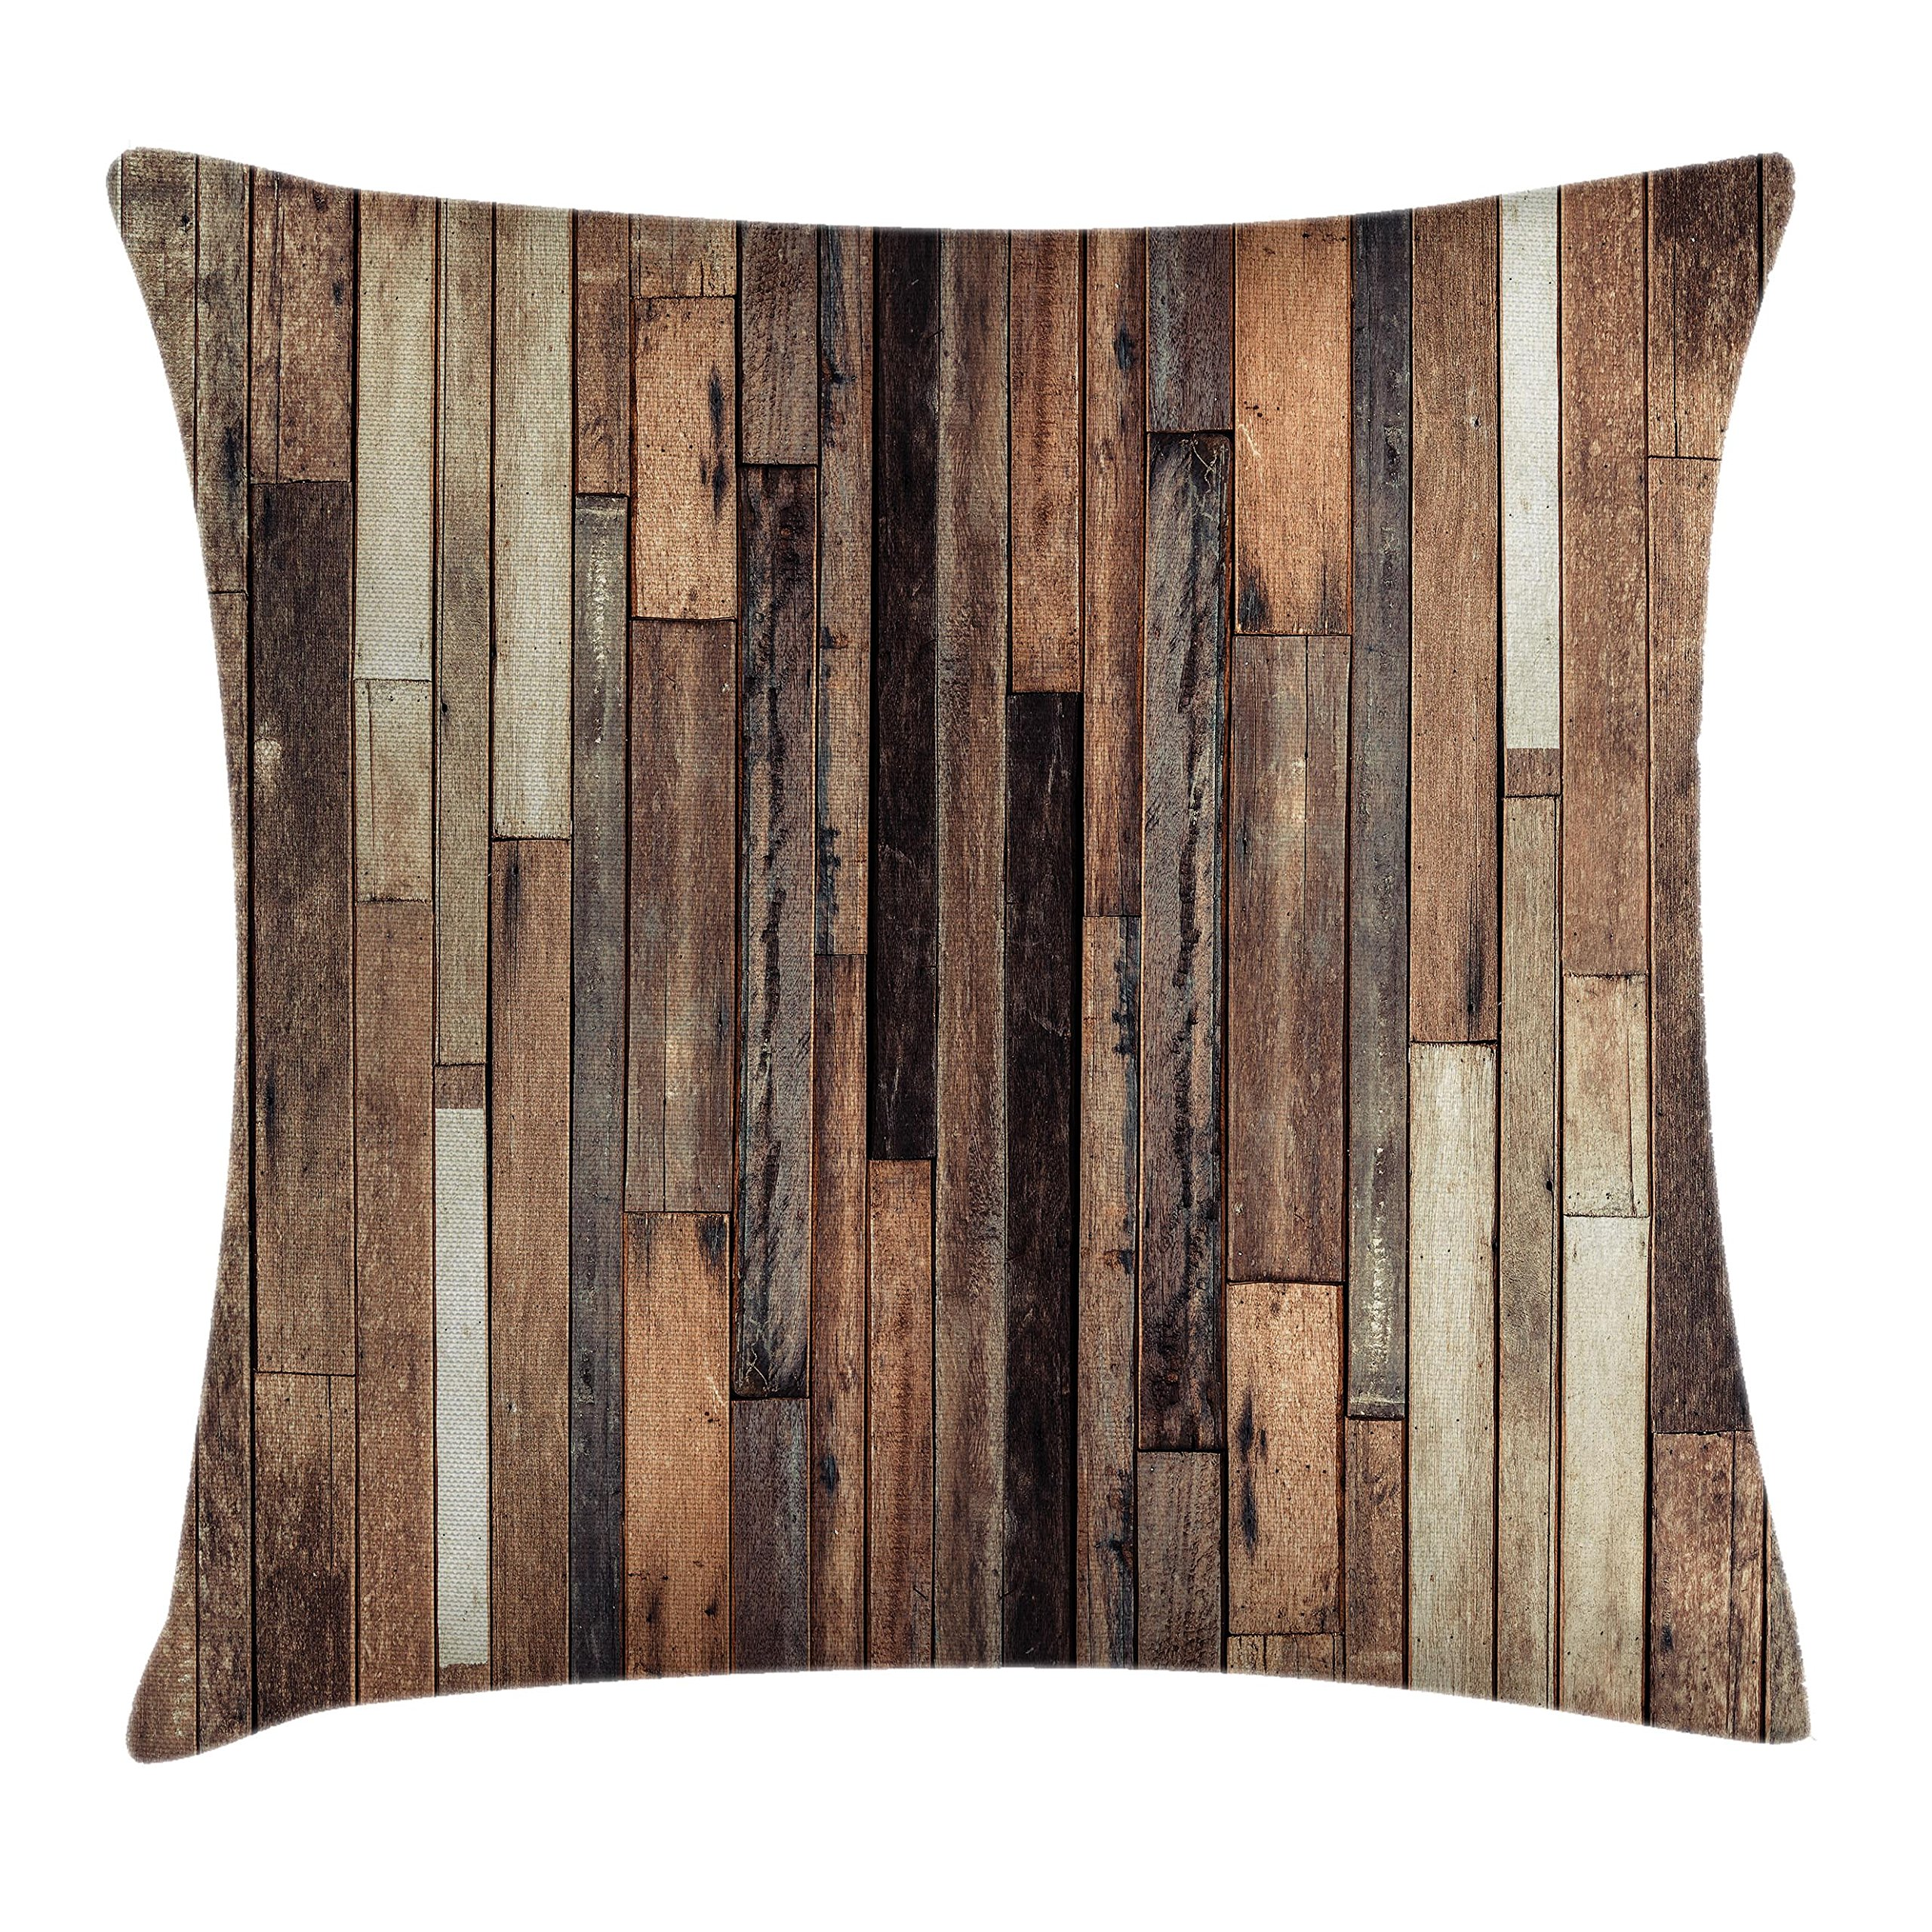 Ambesonne Wooden Throw Pillow Cushion Cover, Brown Old Hardwood Floor Plank Grunge Lodge Garage Loft Natural Rural Graphic Artsy Print, Decorative Square Accent Pillow Case, 16 X 16 Inches, Brown